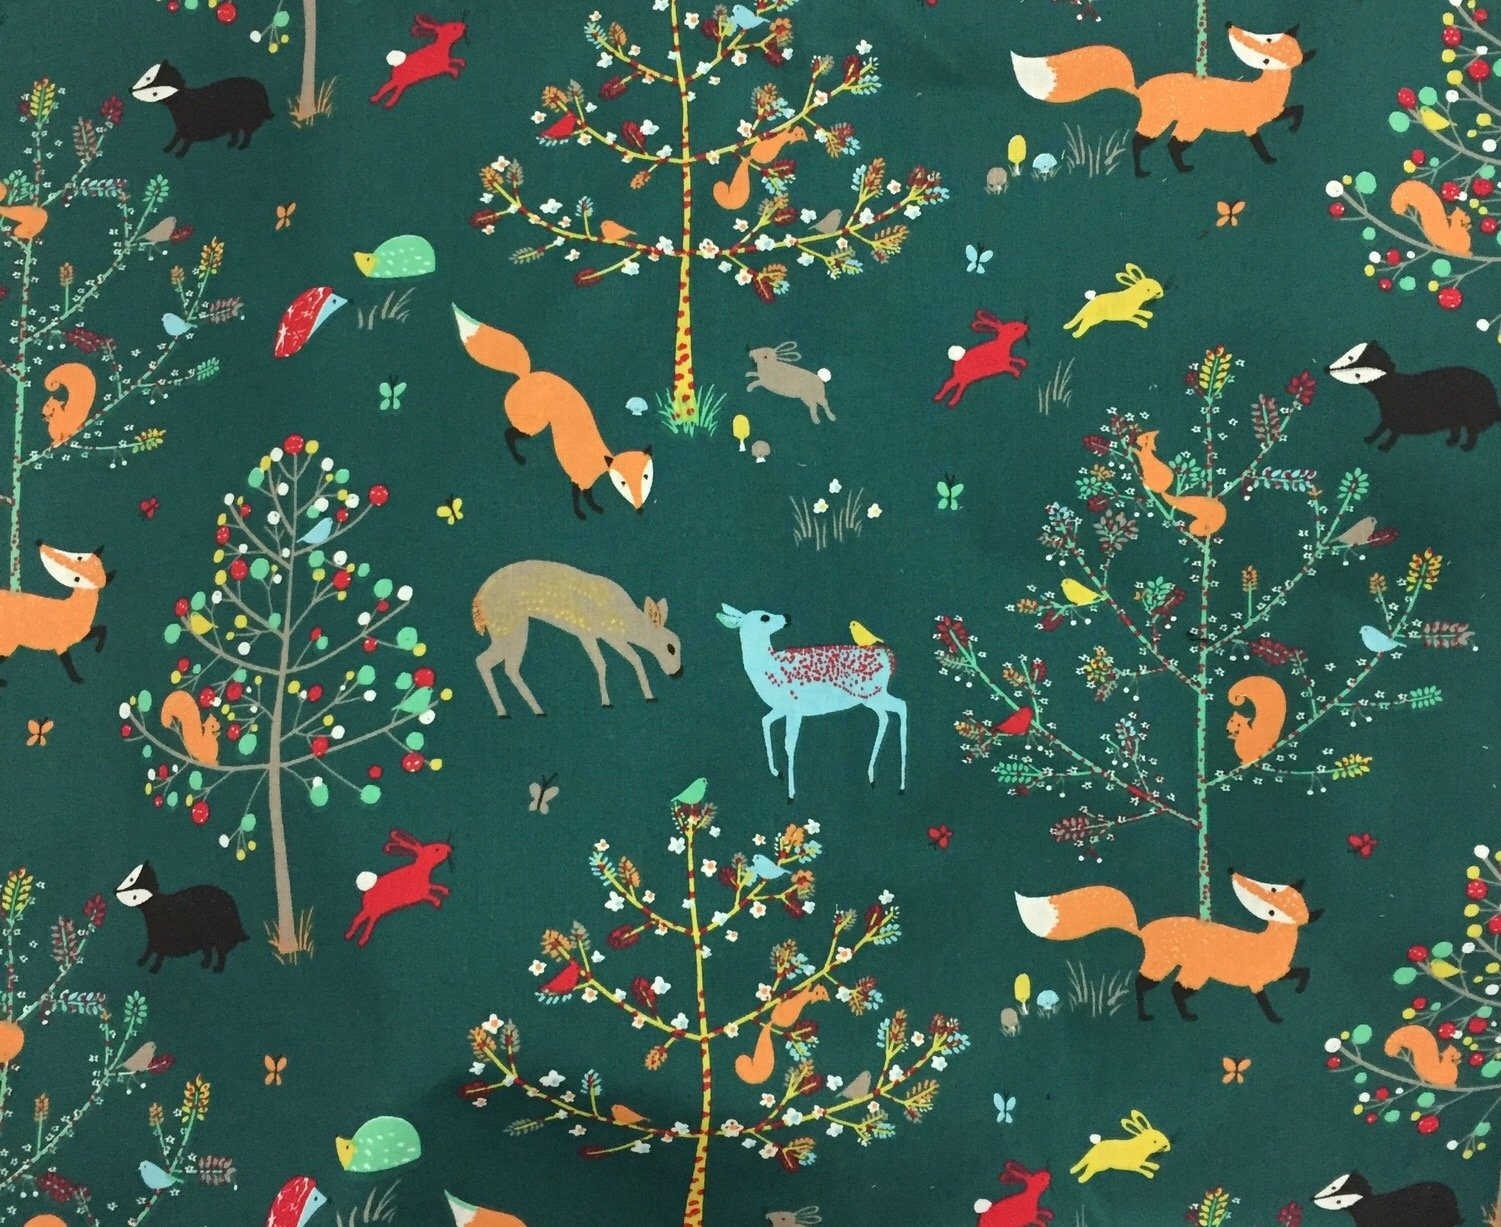 France Retro Scandinavian Fox Forest WIDE Digital Printed Cotton Quilt Fabric ST06